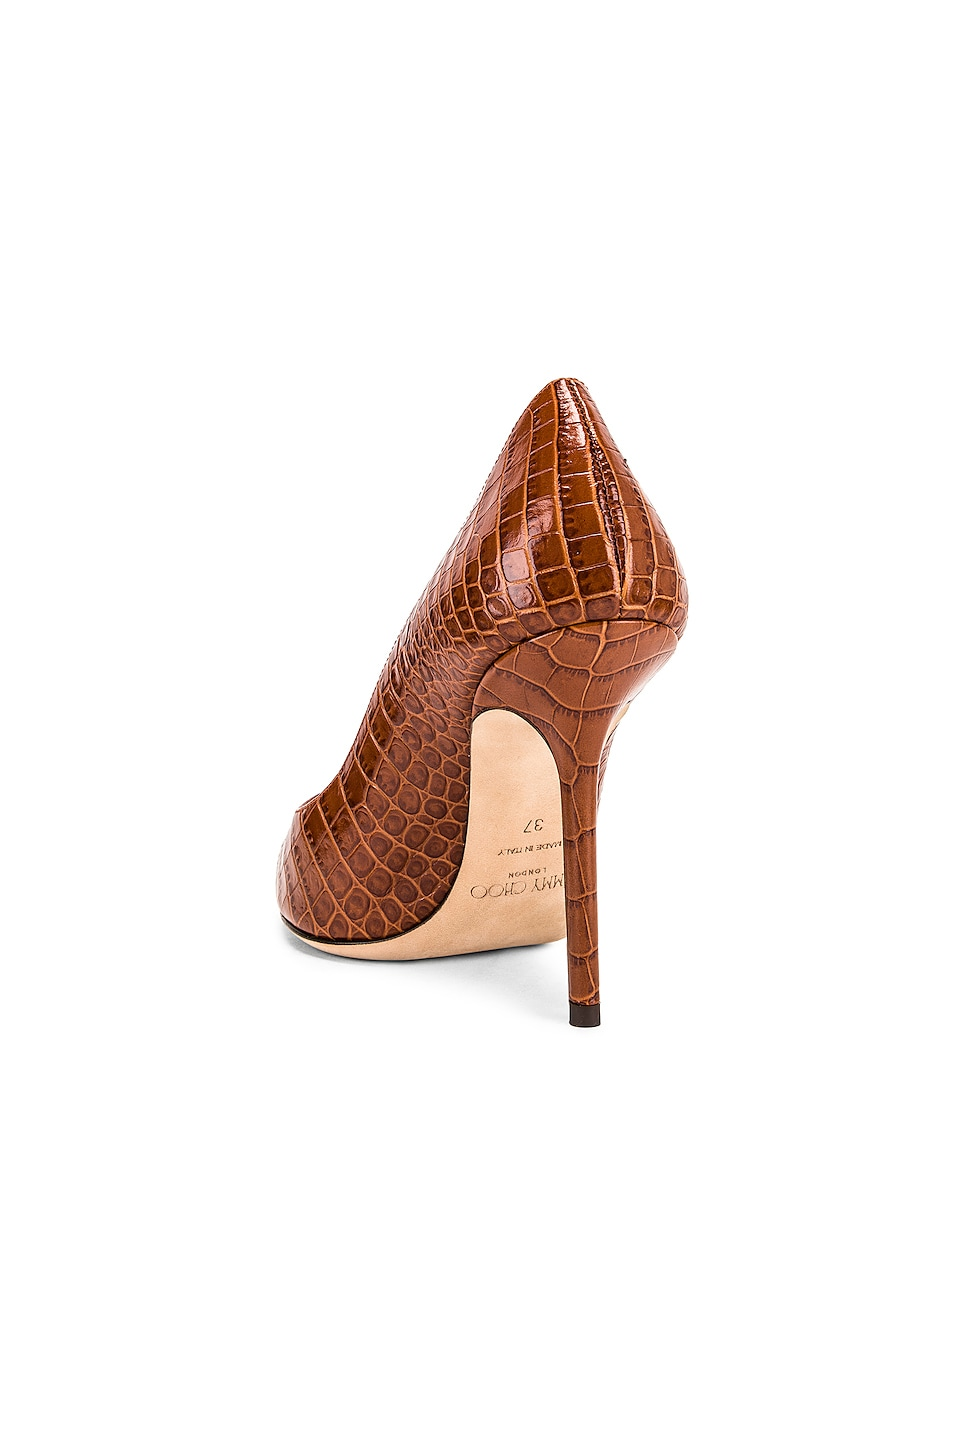 Image 3 of Jimmy Choo Croc Embossed Love 100 Heel in Cuoio